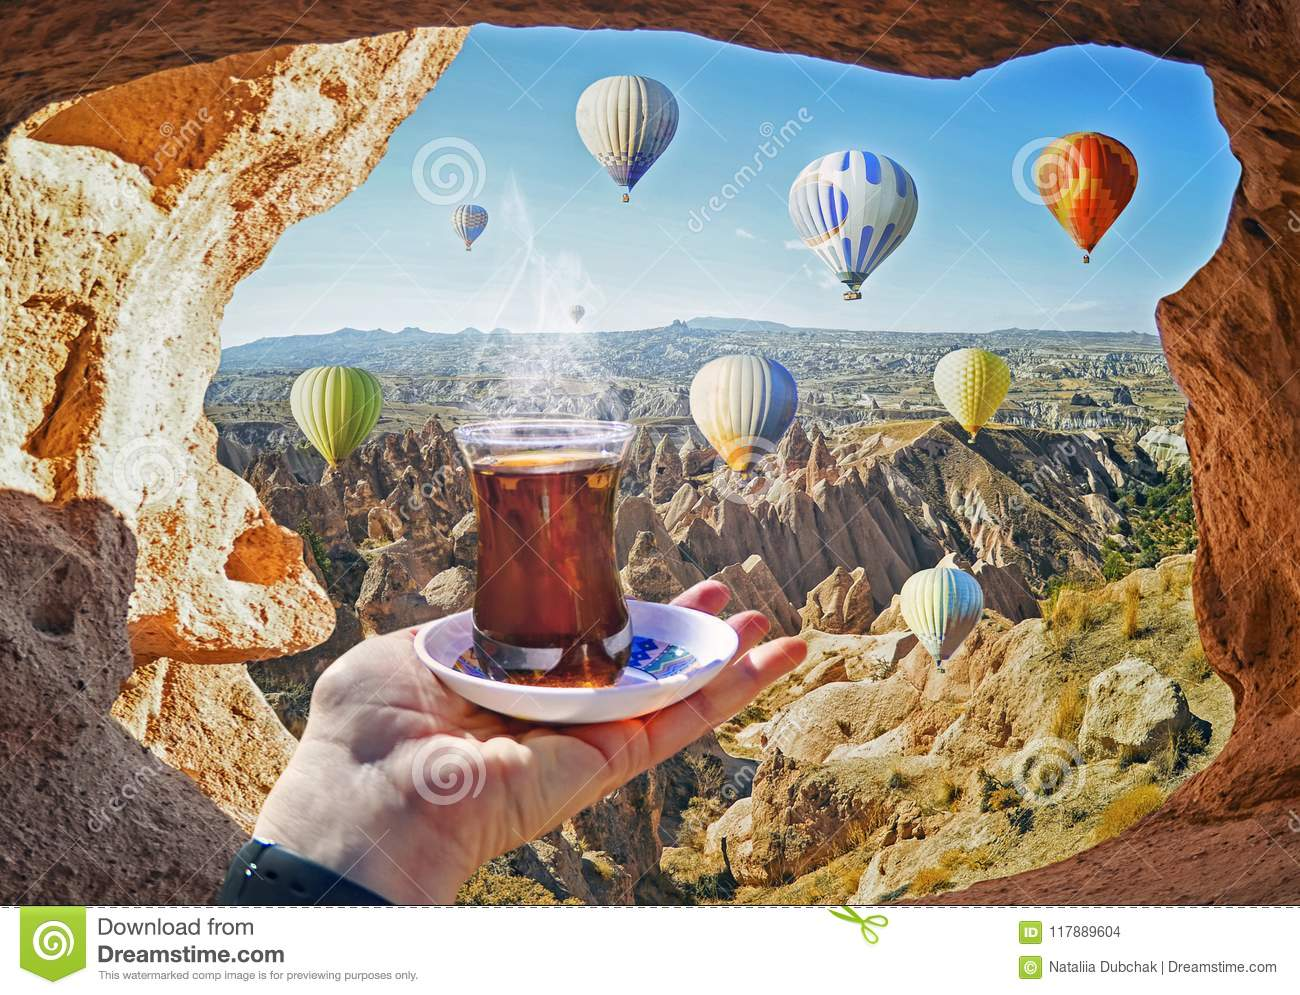 Morning cup of tea with view of colorful hot air balloons